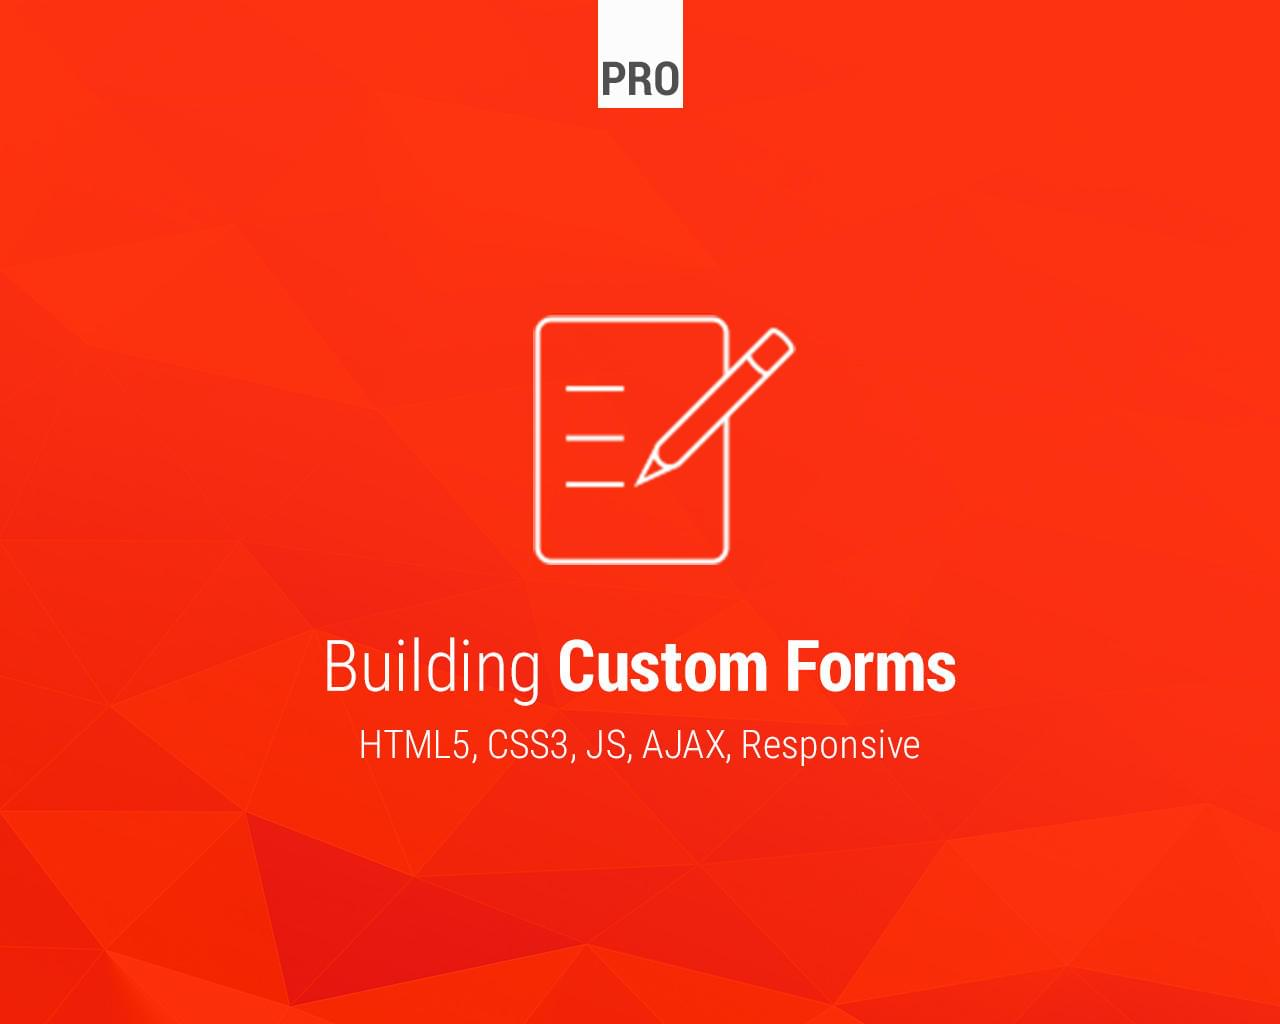 Building Custom Forms - Calculators, Products Customization & More by Lukasz_Czerwinski - 113563